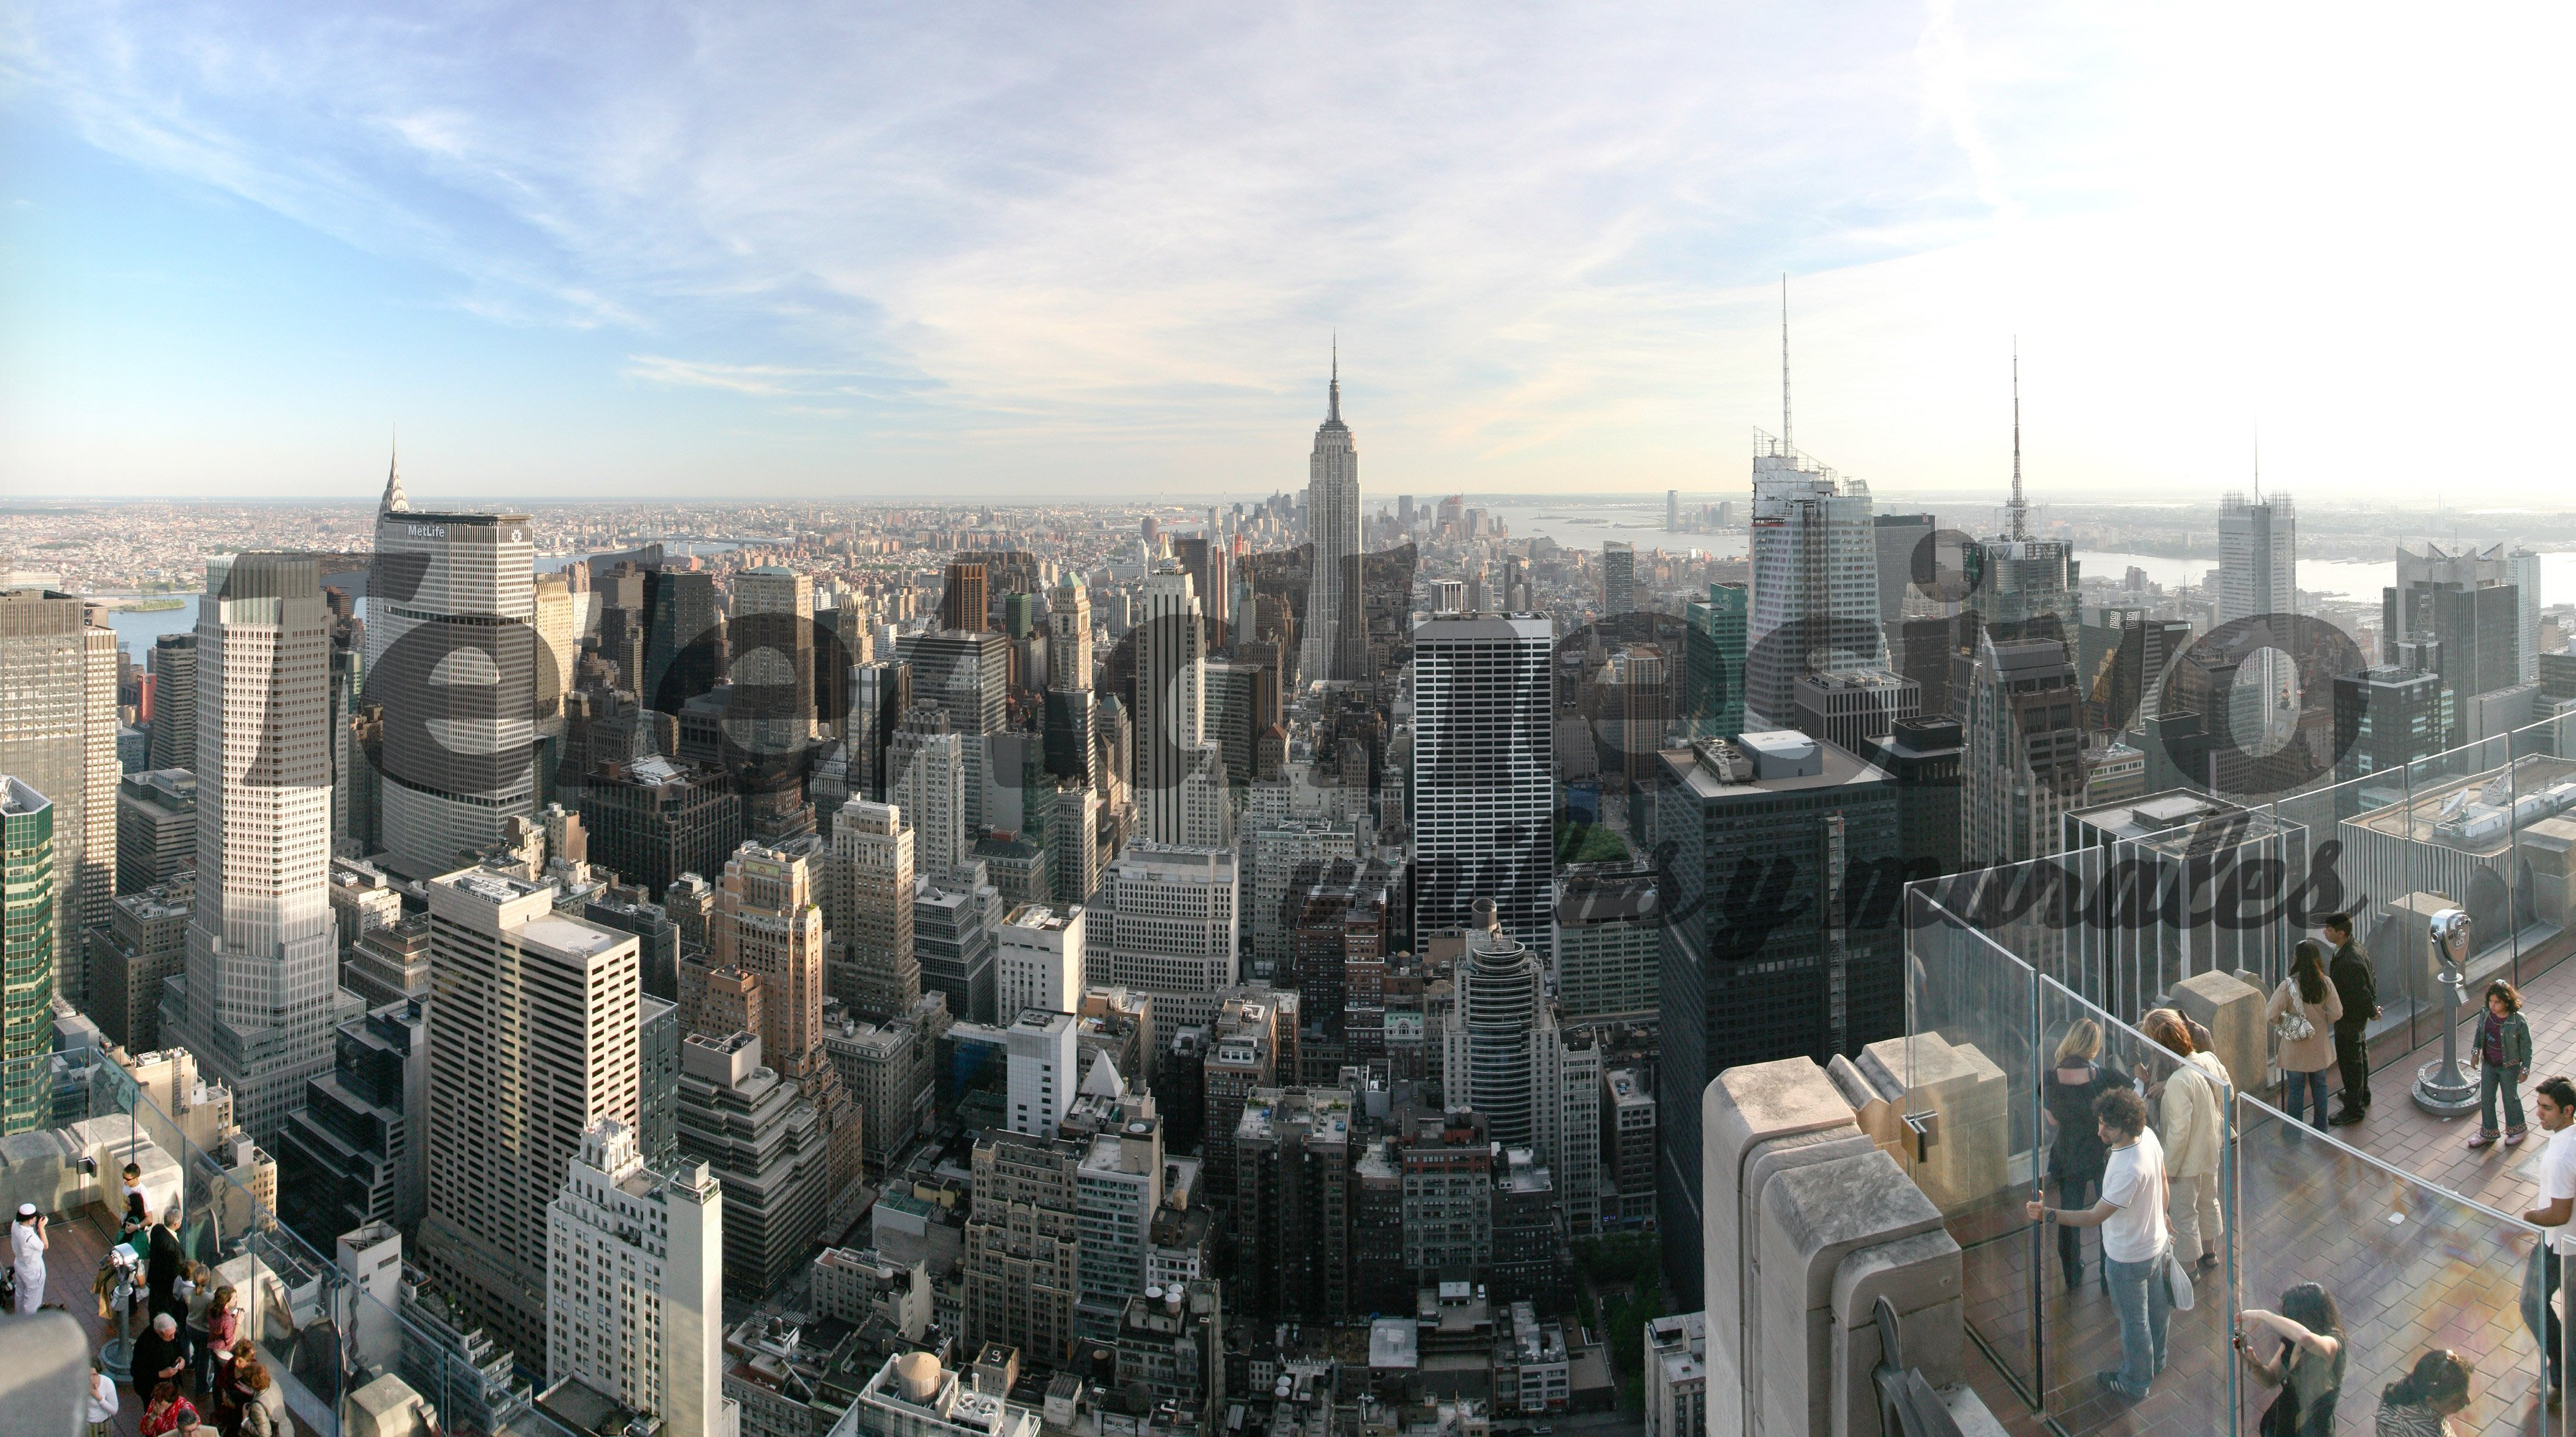 Fototapeten: New York City